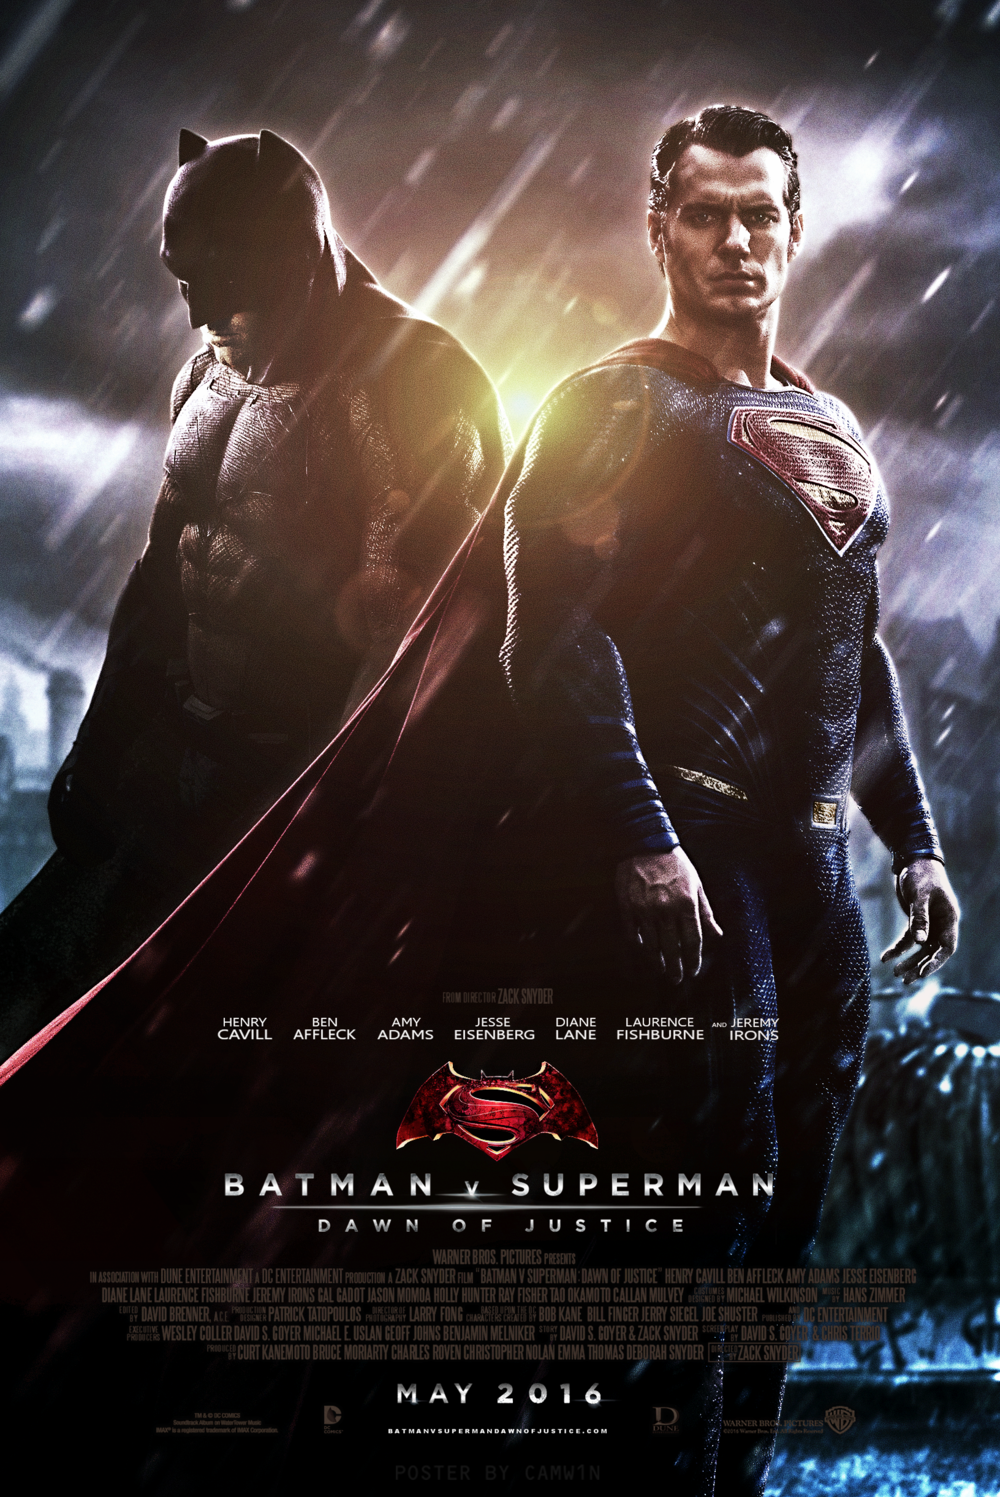 batman_v_superman_dawn_of_justice_poster___style_b_by_camw1n-d7pfwi7.png